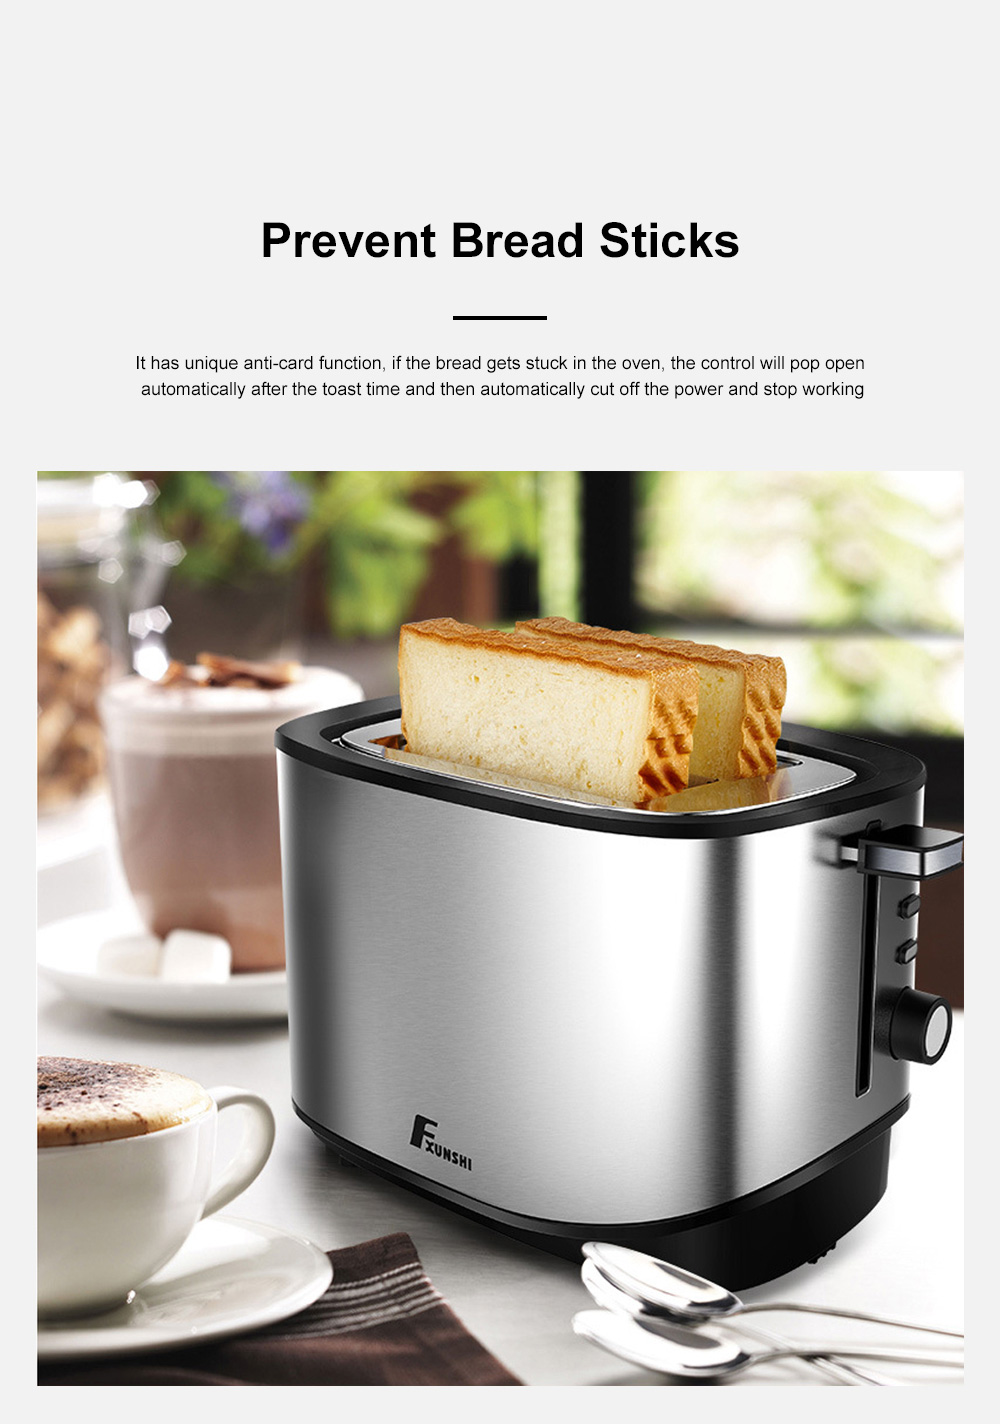 Fxunshi 800W Power Home Appliance Stainless Steel Auto Switch Off 2 Slices 2 Slot Portable Automatic Bread Maker Toaster 8